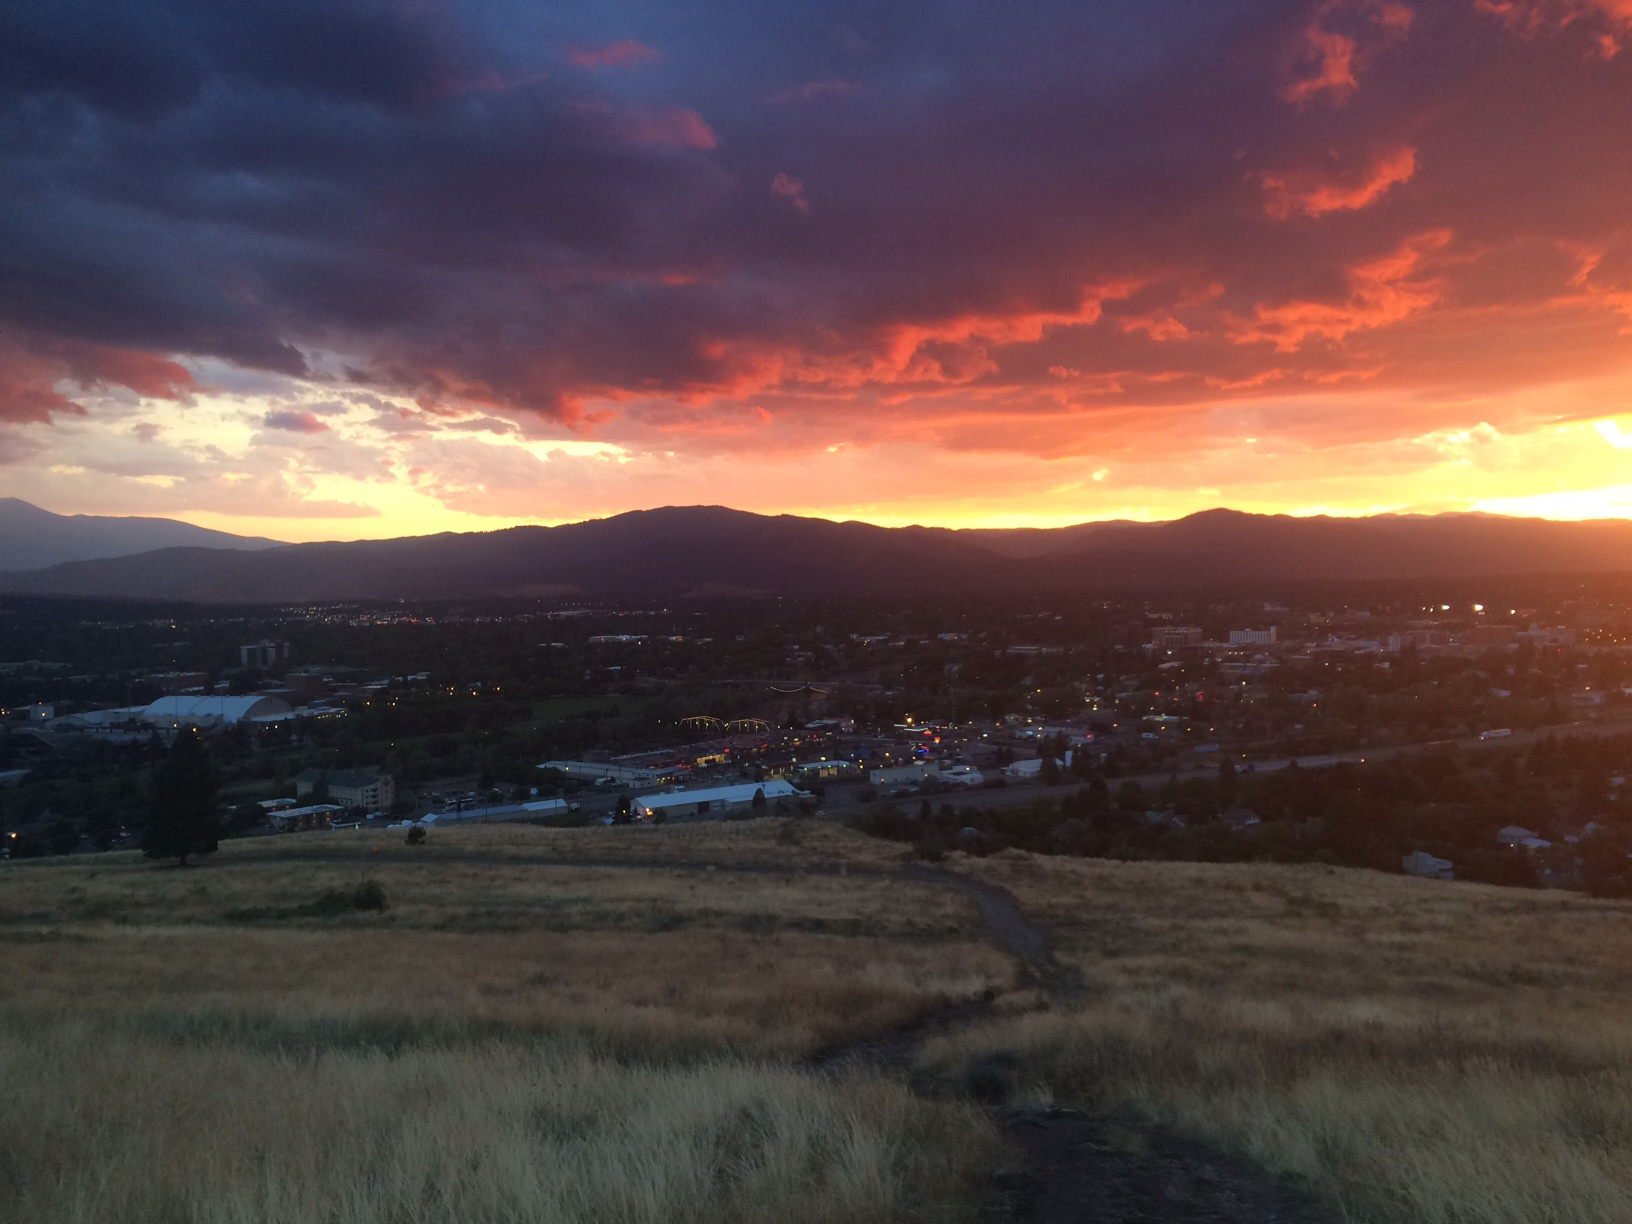 Low clouds and a late-summer sunset over Missoula. Photo by Peter Gurche.